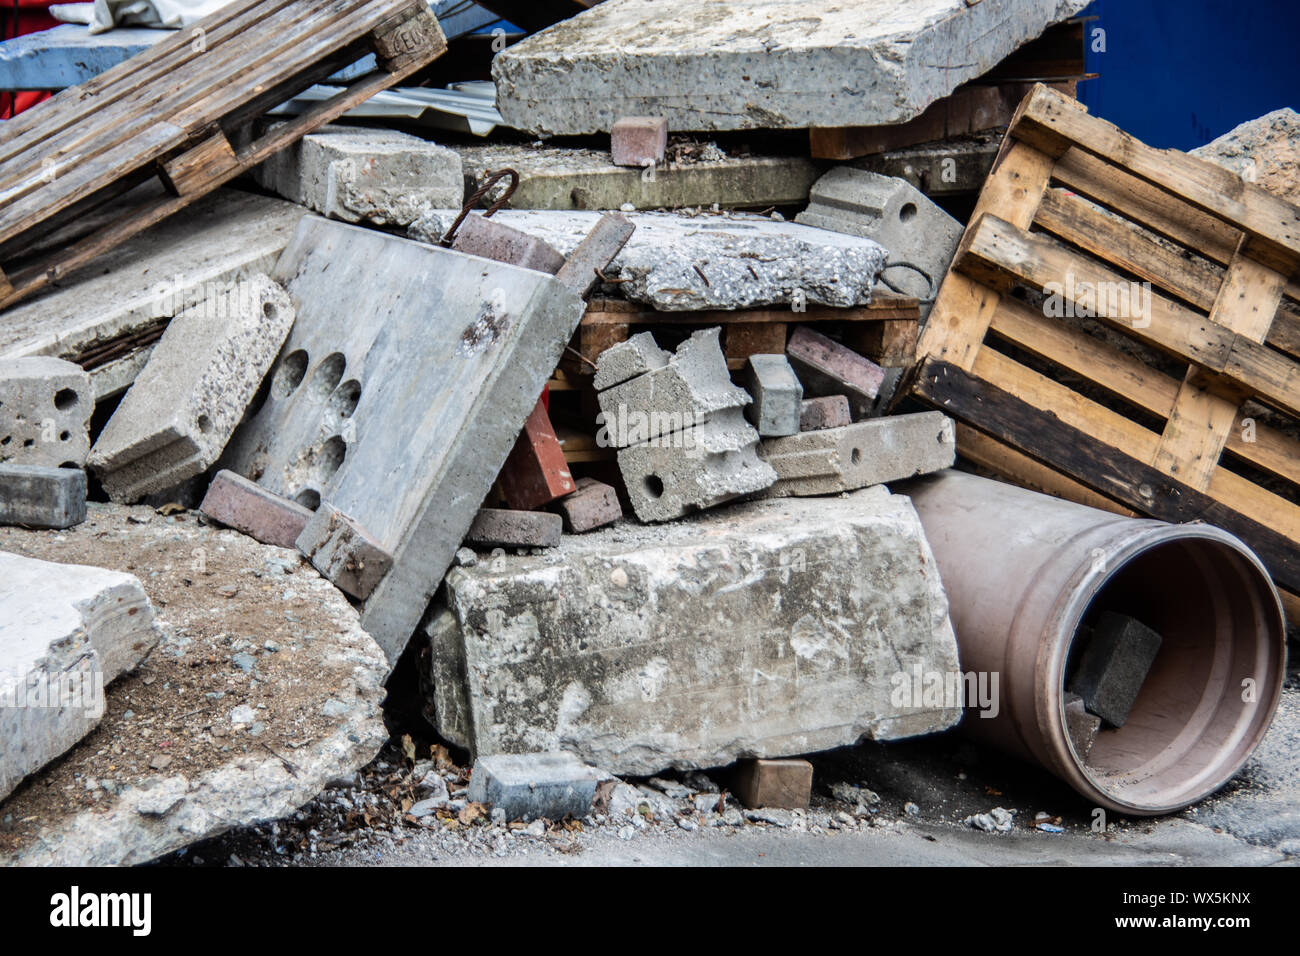 Building rubble of concrete and wood Stock Photo